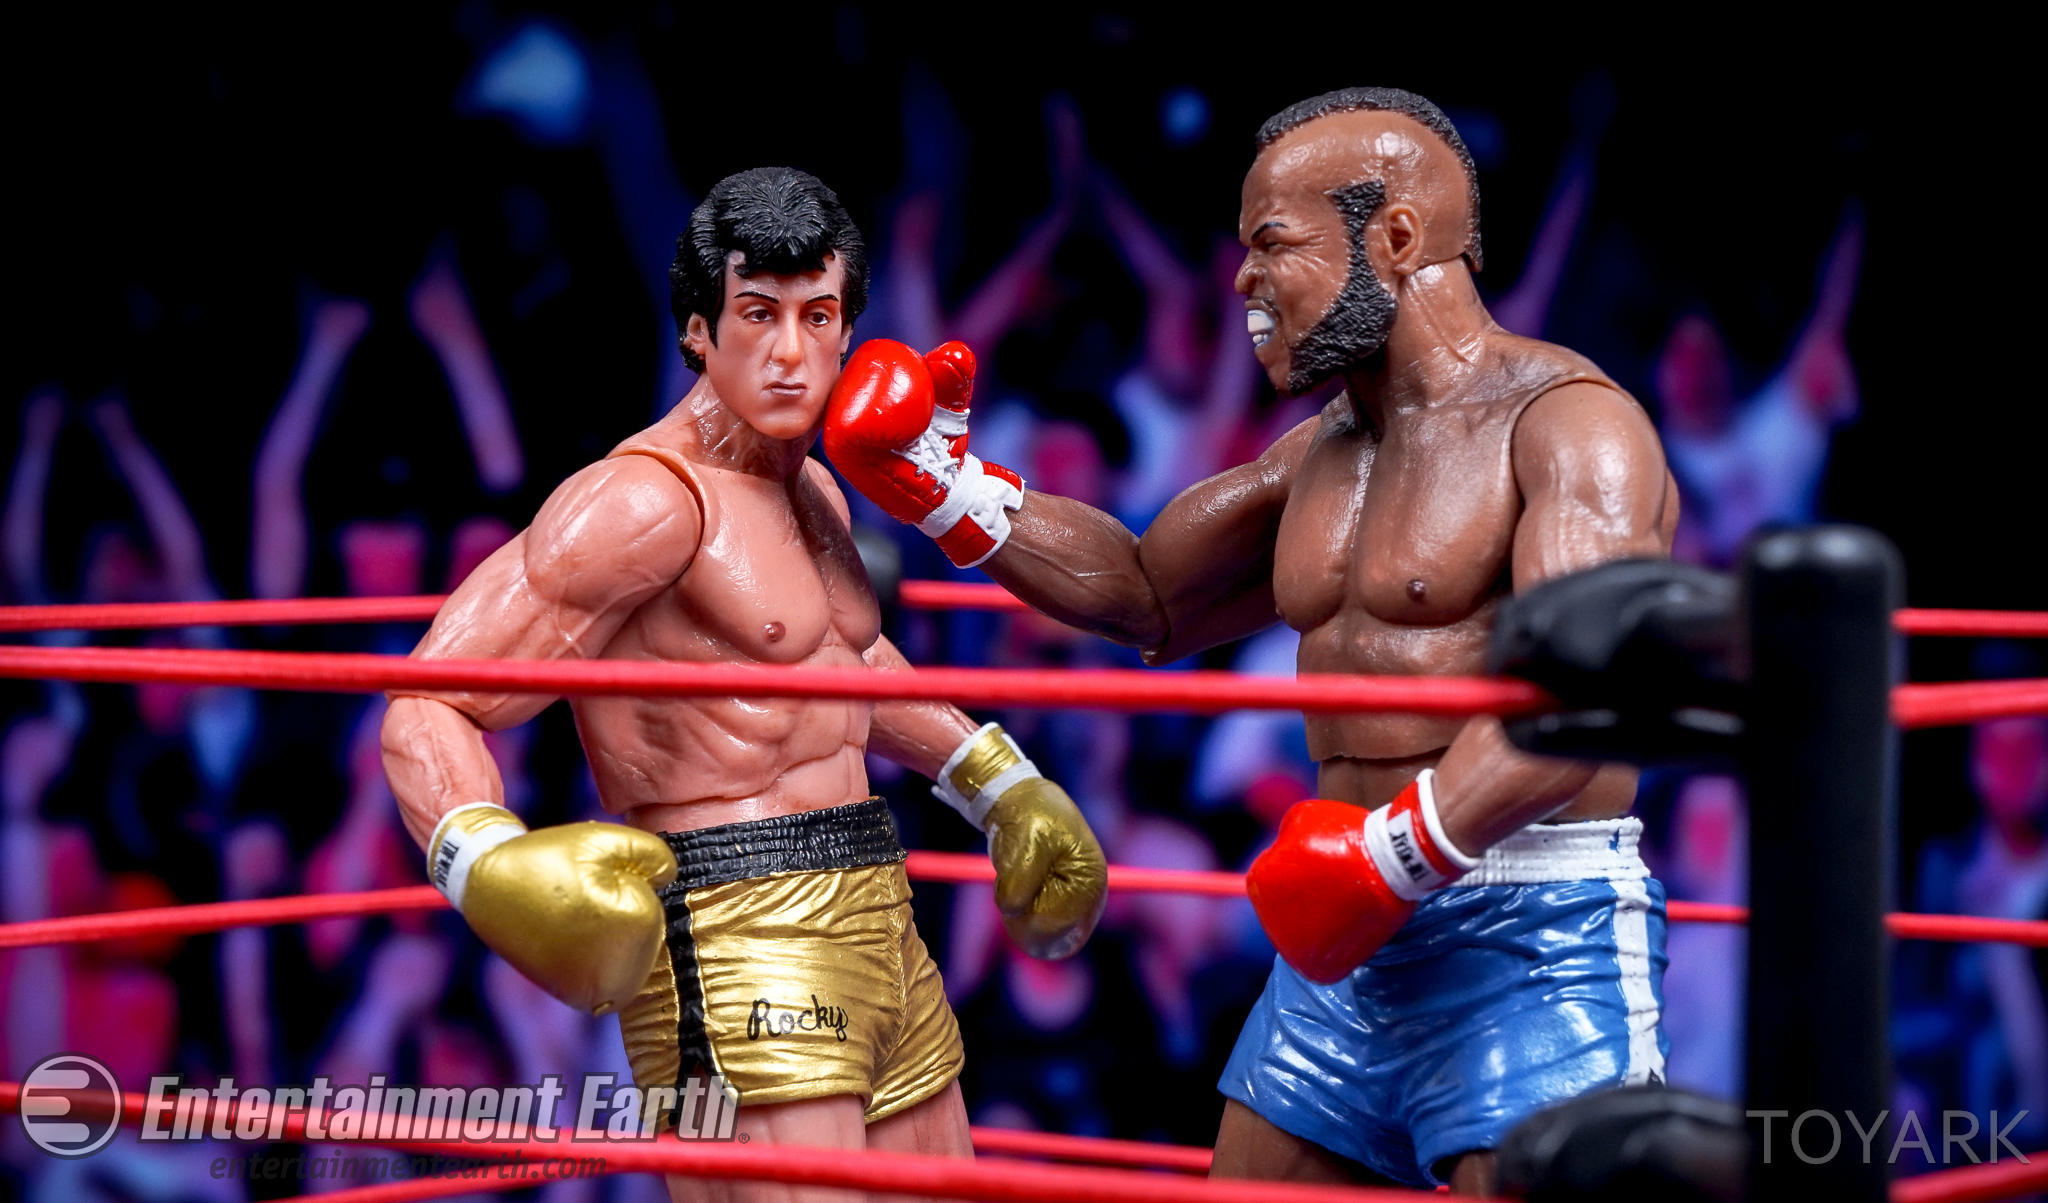 http://news.toyark.com/wp-content/uploads/sites/4/2016/06/Rocky-Series-1-NECA-069.jpg